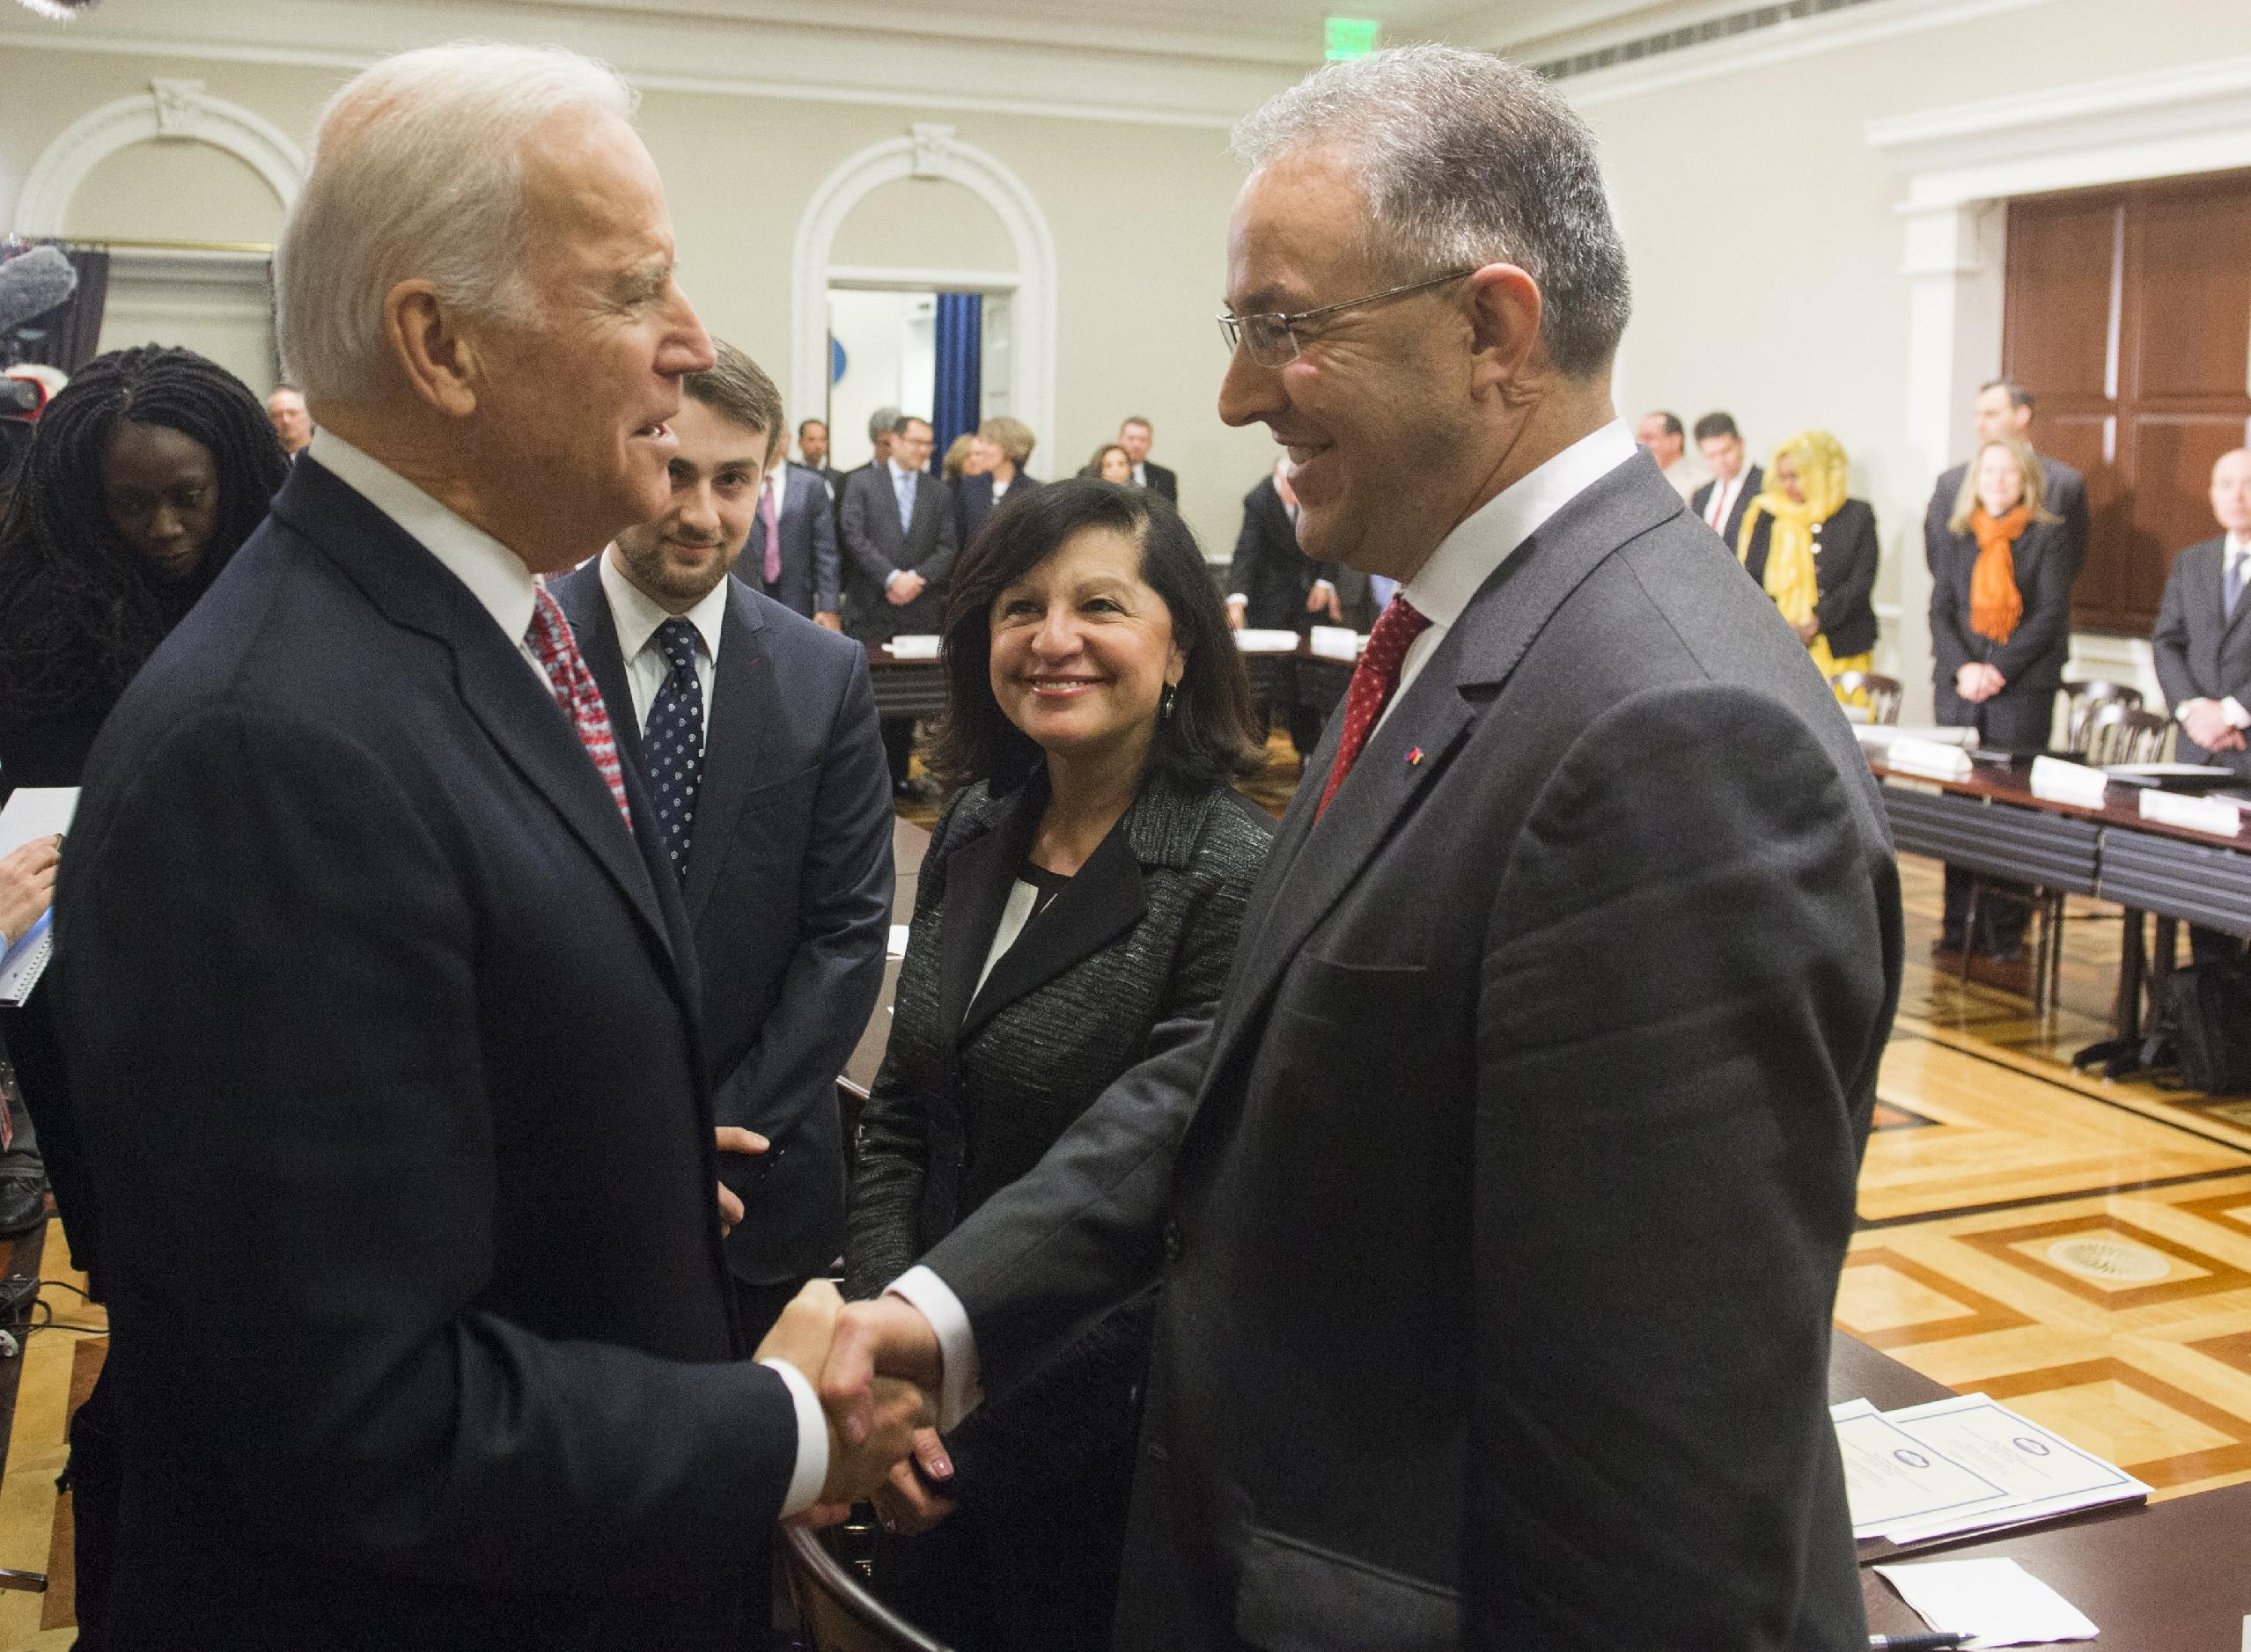 US Vice President Joe Biden shakes hands with Mayor Ahmed Aboutaleb of Rotterdam, Netherlands, during the opening session of the White House Summit in Washington, DC, February 17, 2015 (AFP Photo/Saul Loeb)